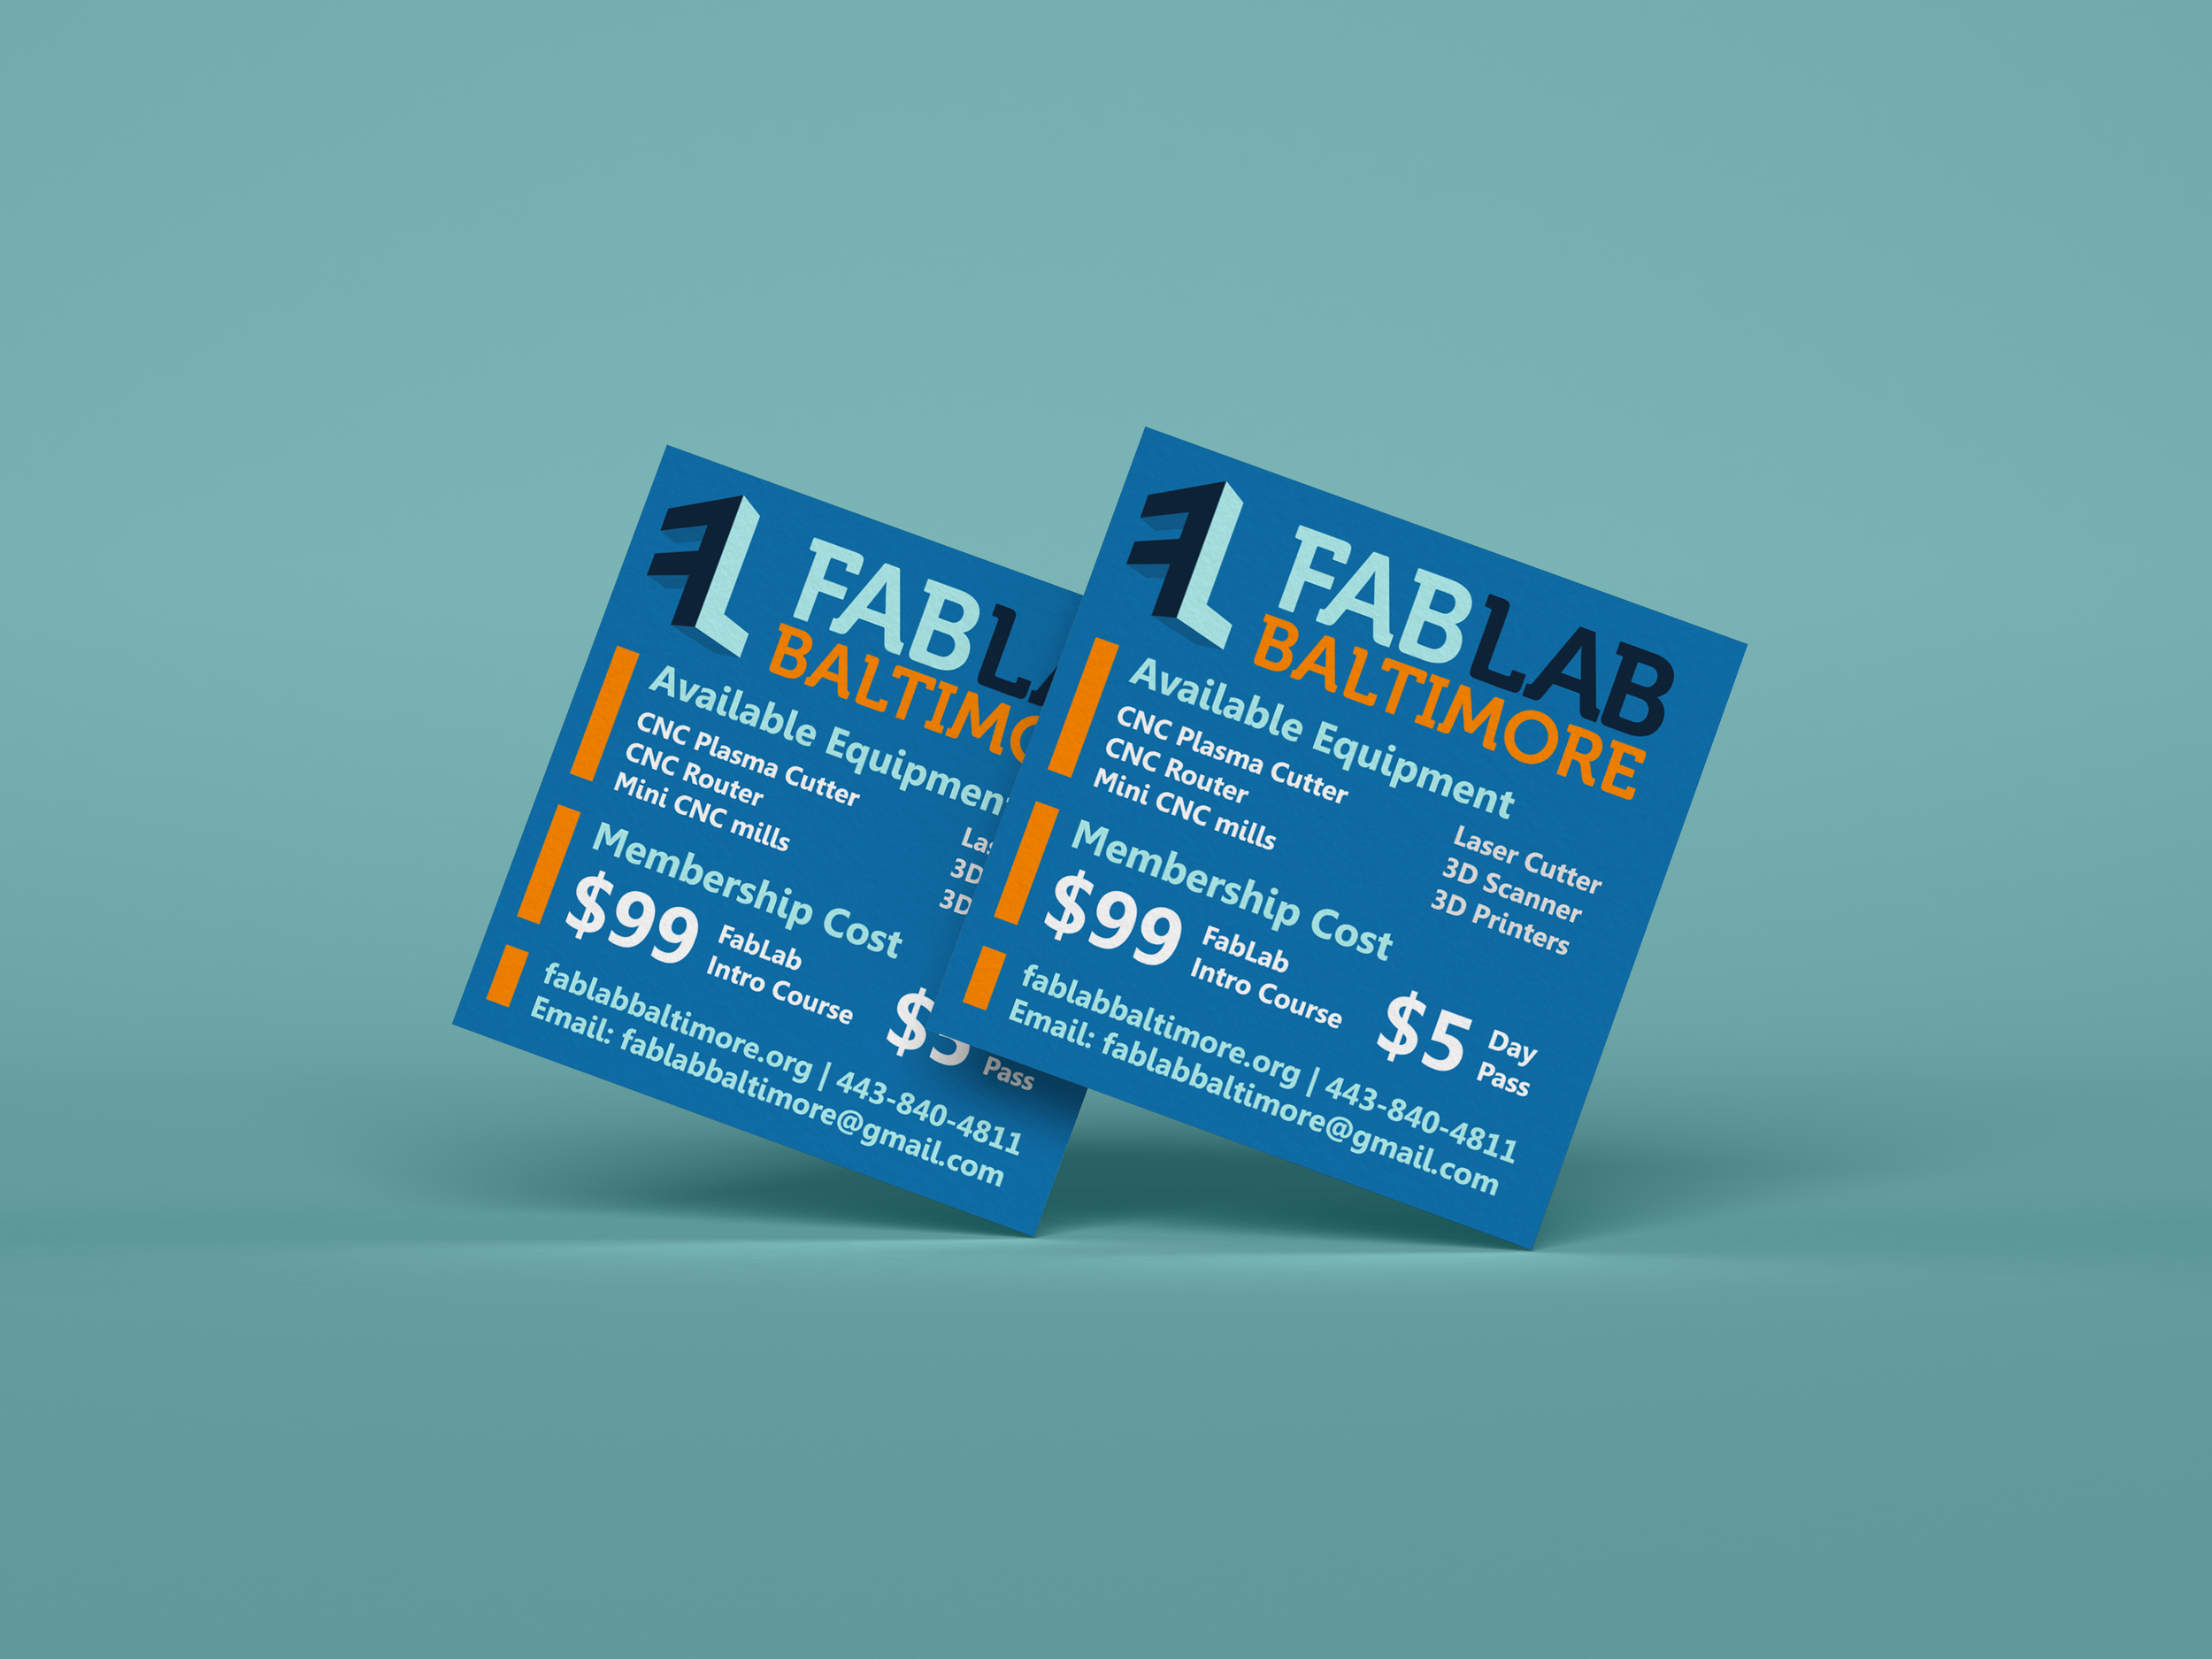 Client: Flyer Redo for the FabLab of Baltimore - Design Process: In the wake of a competing lab closing, the client needed to resign marketing materials to attract new members. I redesigned the flyer to better organize the available equipment and emphasis the membership cost.